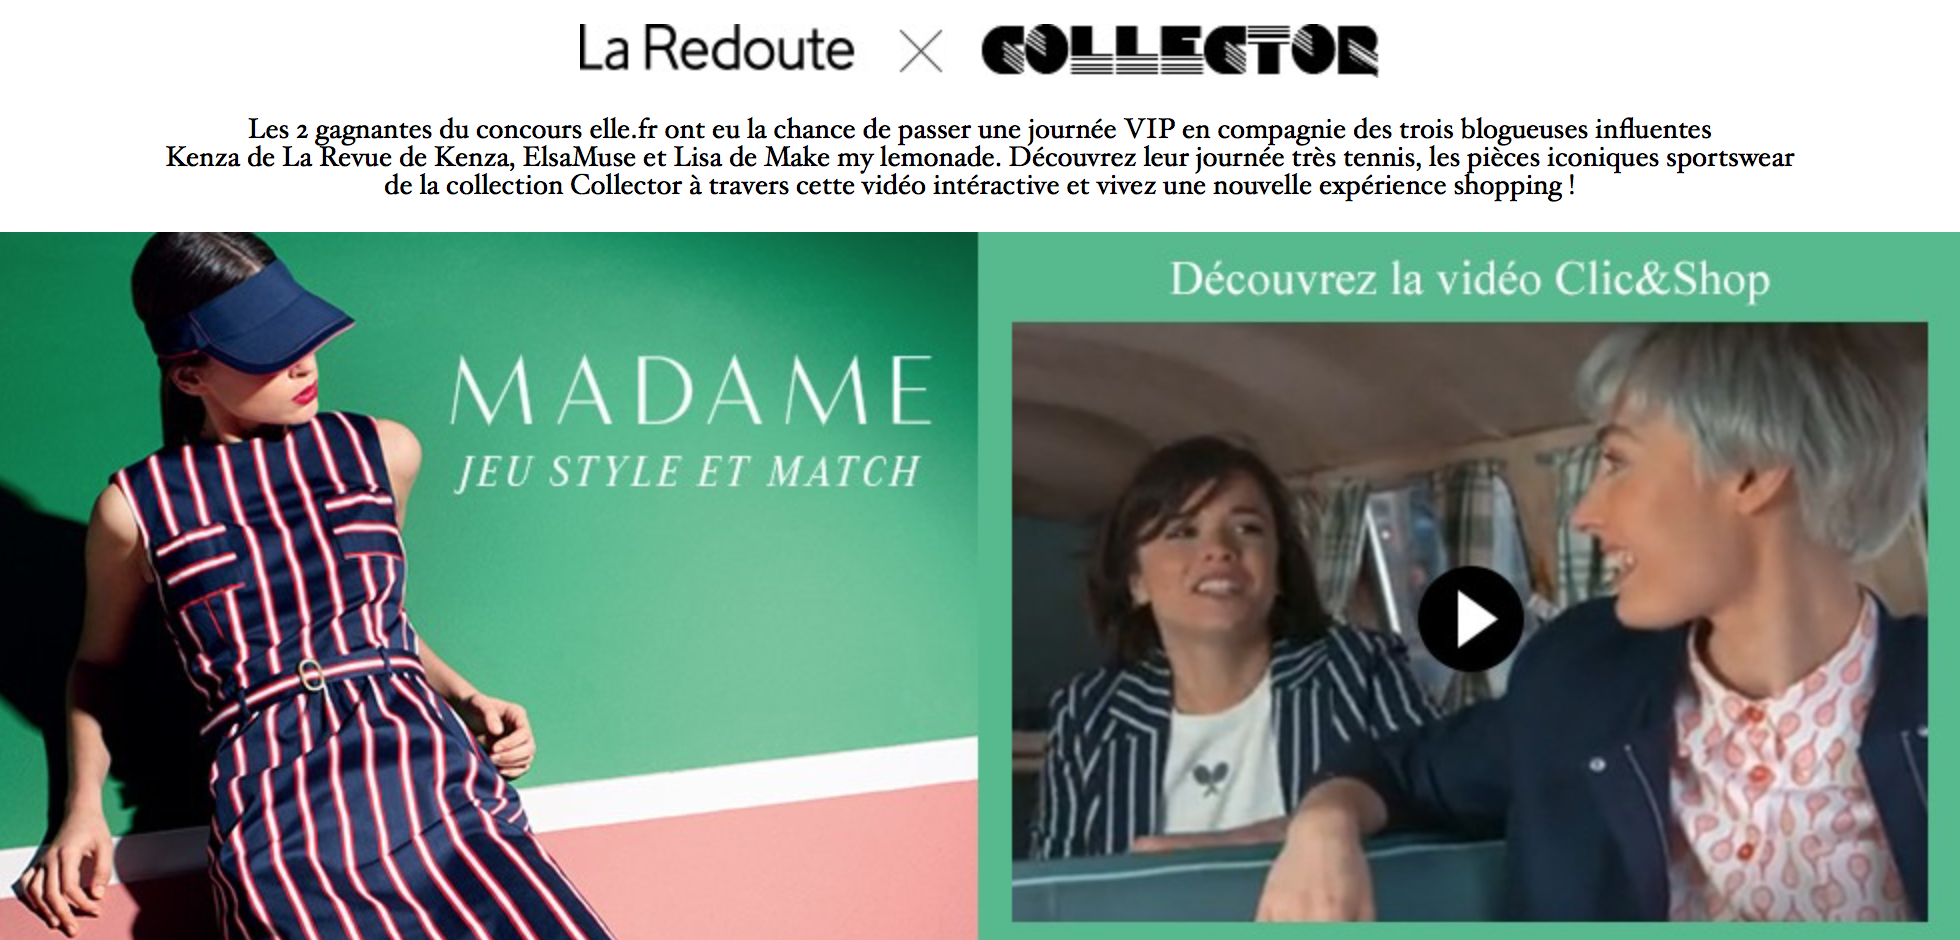 La Redoute x Collector